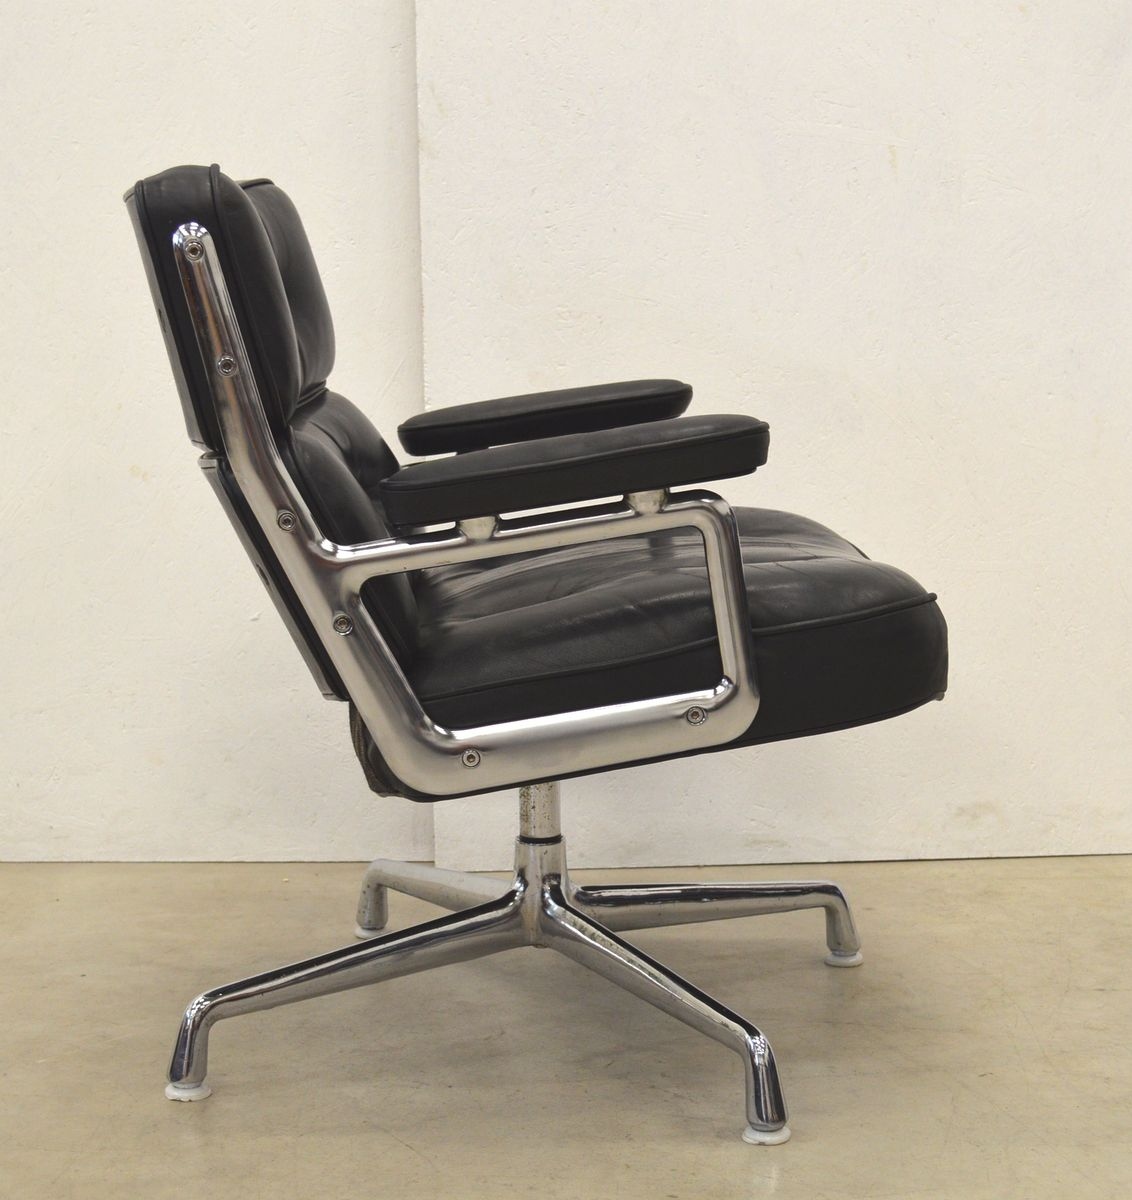 American es105 lobby chair by charles ray eames for for Eames chair deutschland